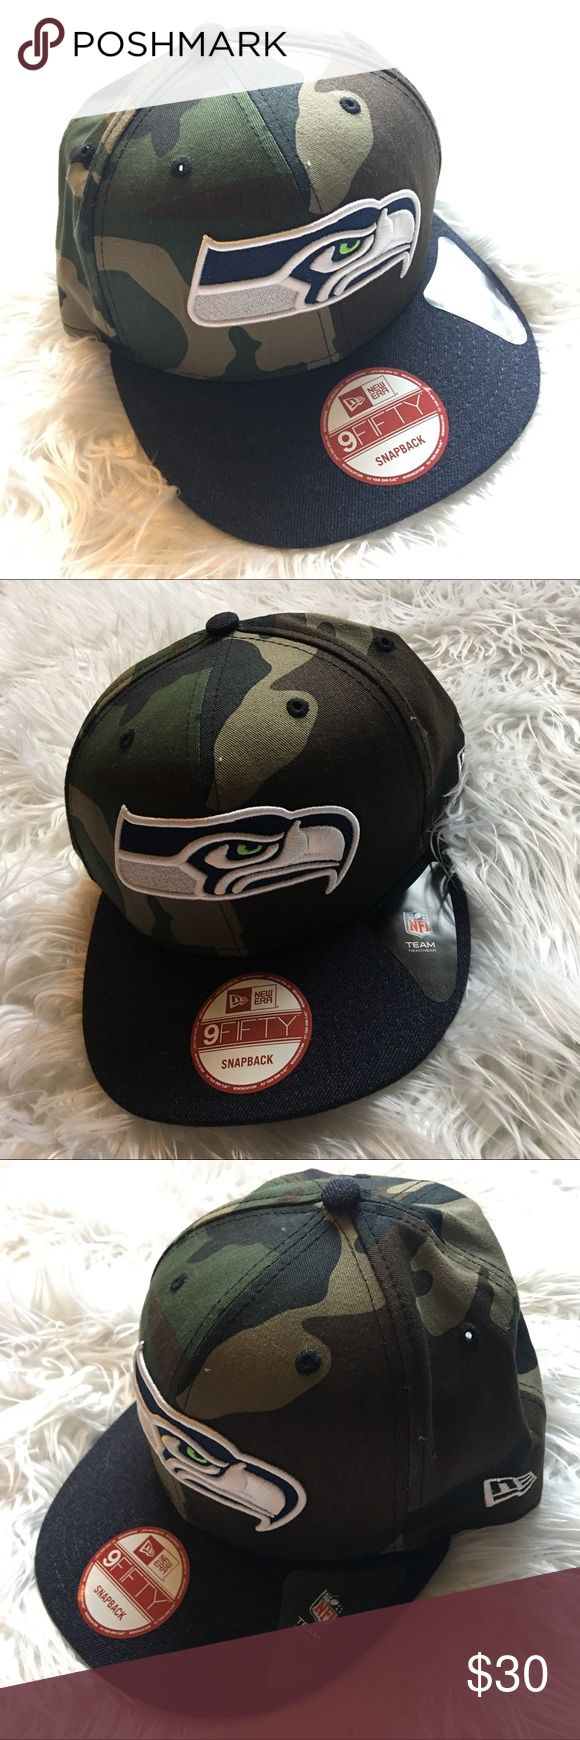 New Era Seattle Seahawks Camo Denim Bill Snapback This hat has it all! From the camo covering to the denim bill, you will stun in this. Team is Seattle Seahawks, winners of the 2014 Super Bowl! Men's hat. Hat is NWOT. Please offer or ask any questions! New Era Accessories Hats